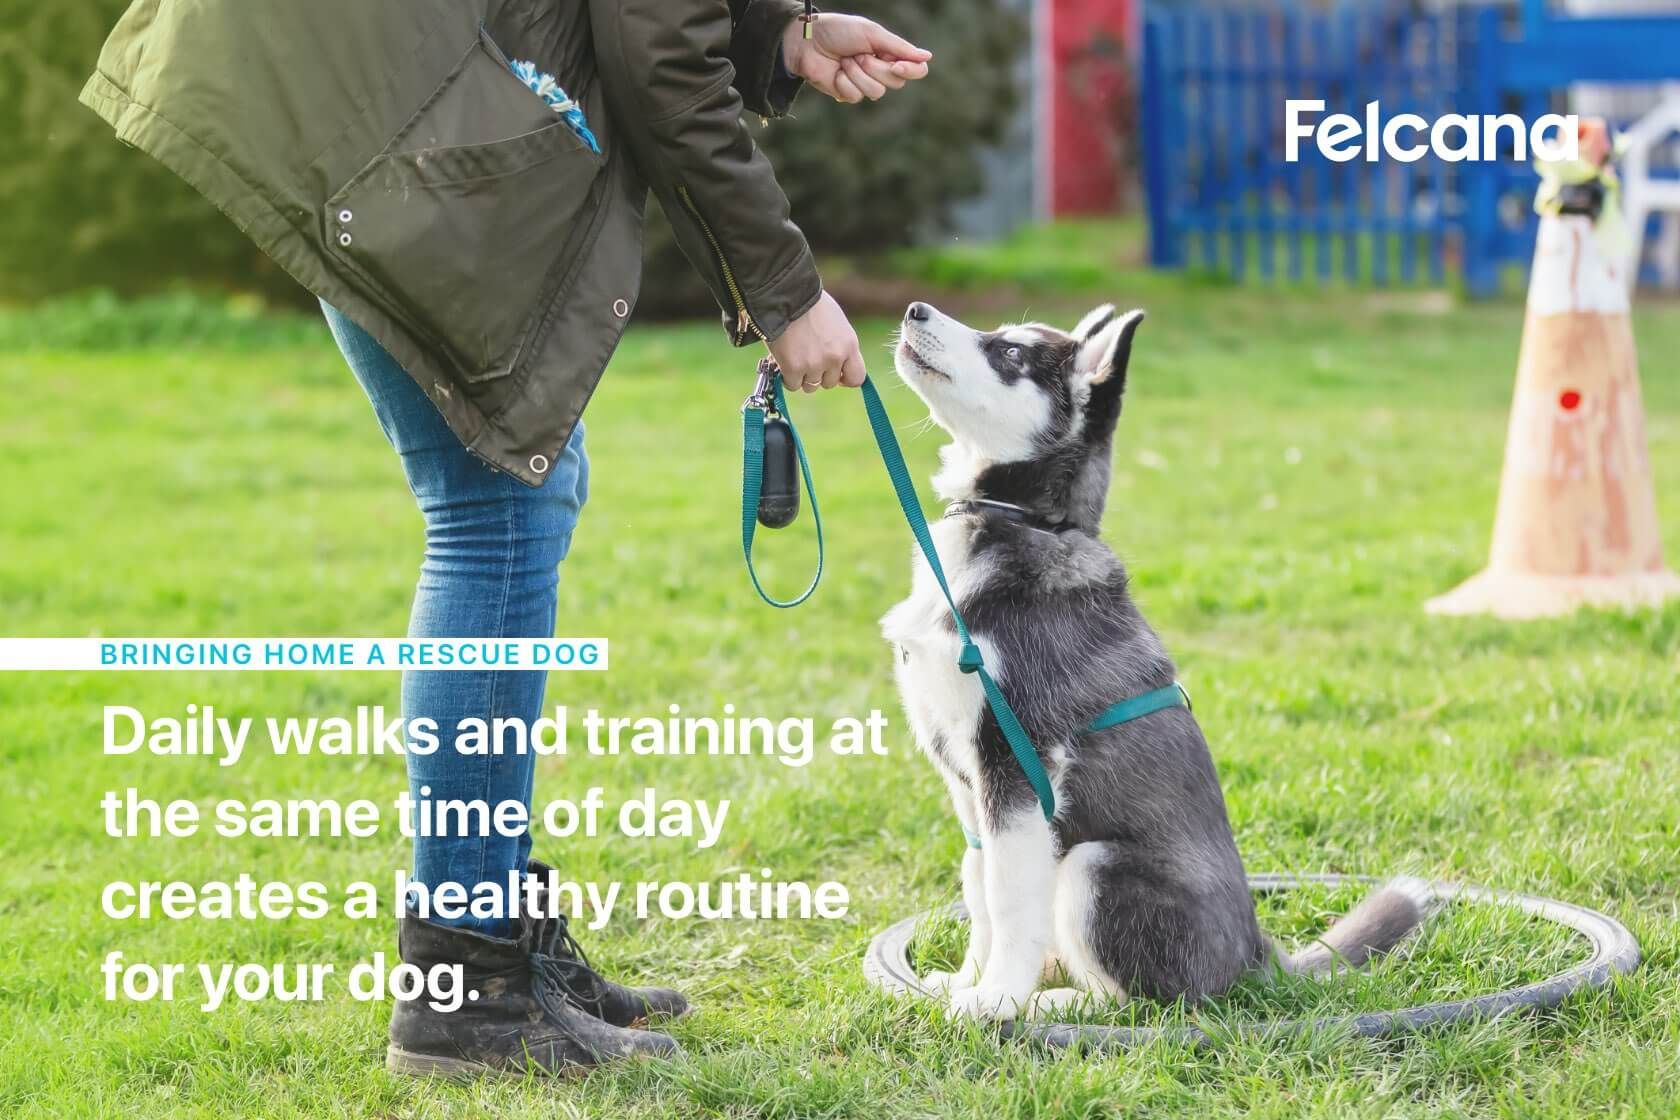 Daily walks and training at the same time of day creates a healthy routine for your dog